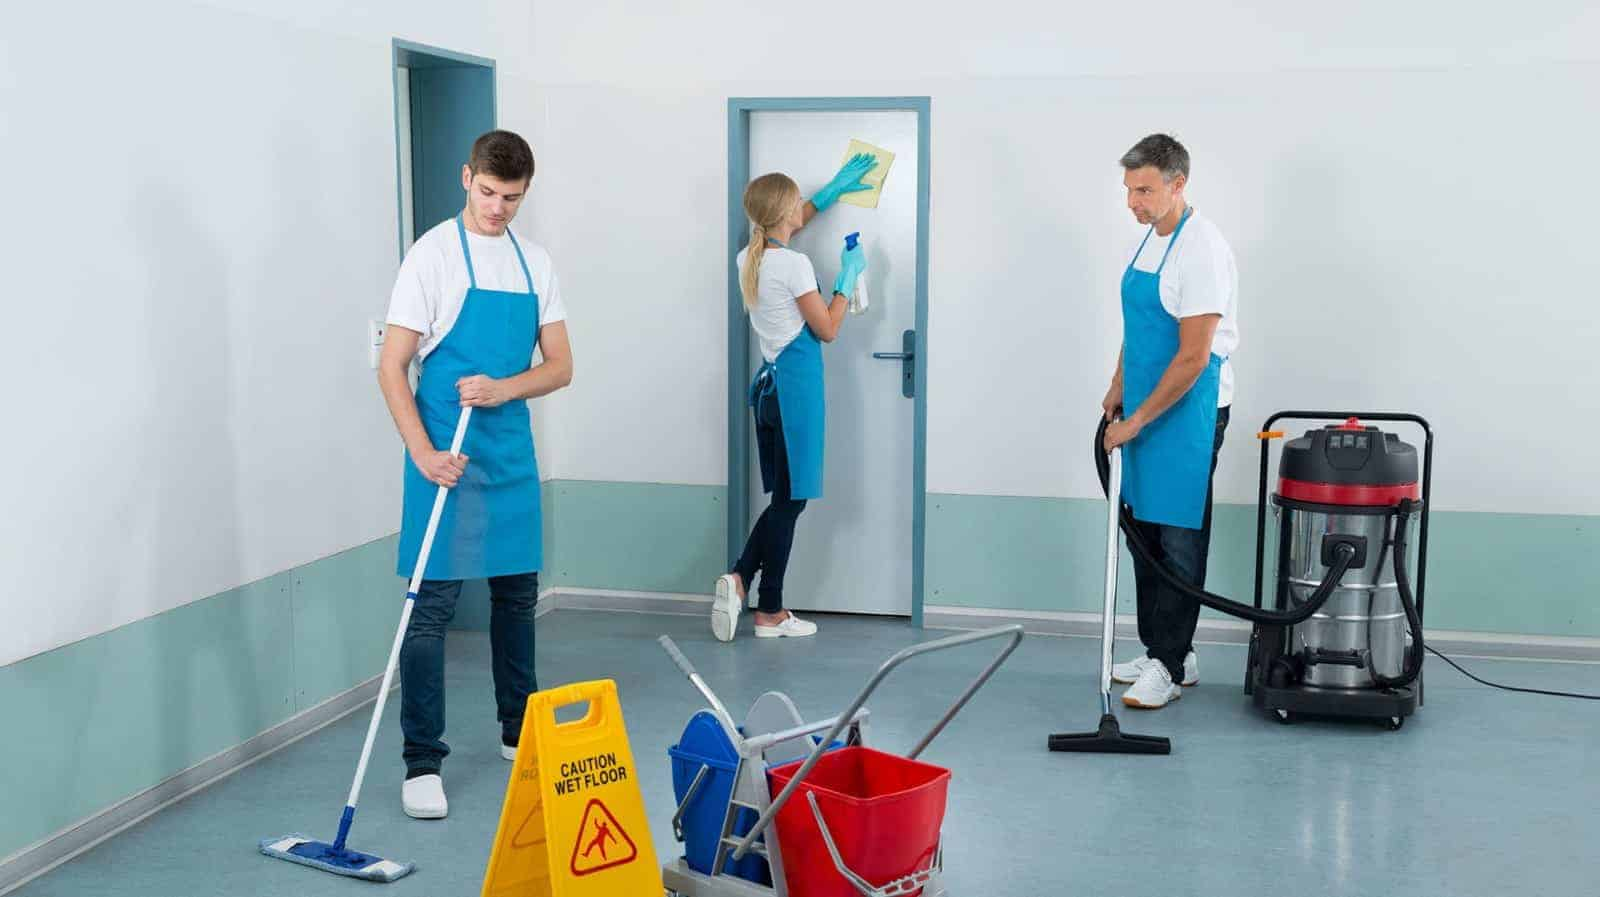 Qualified Cleaning Services Staff